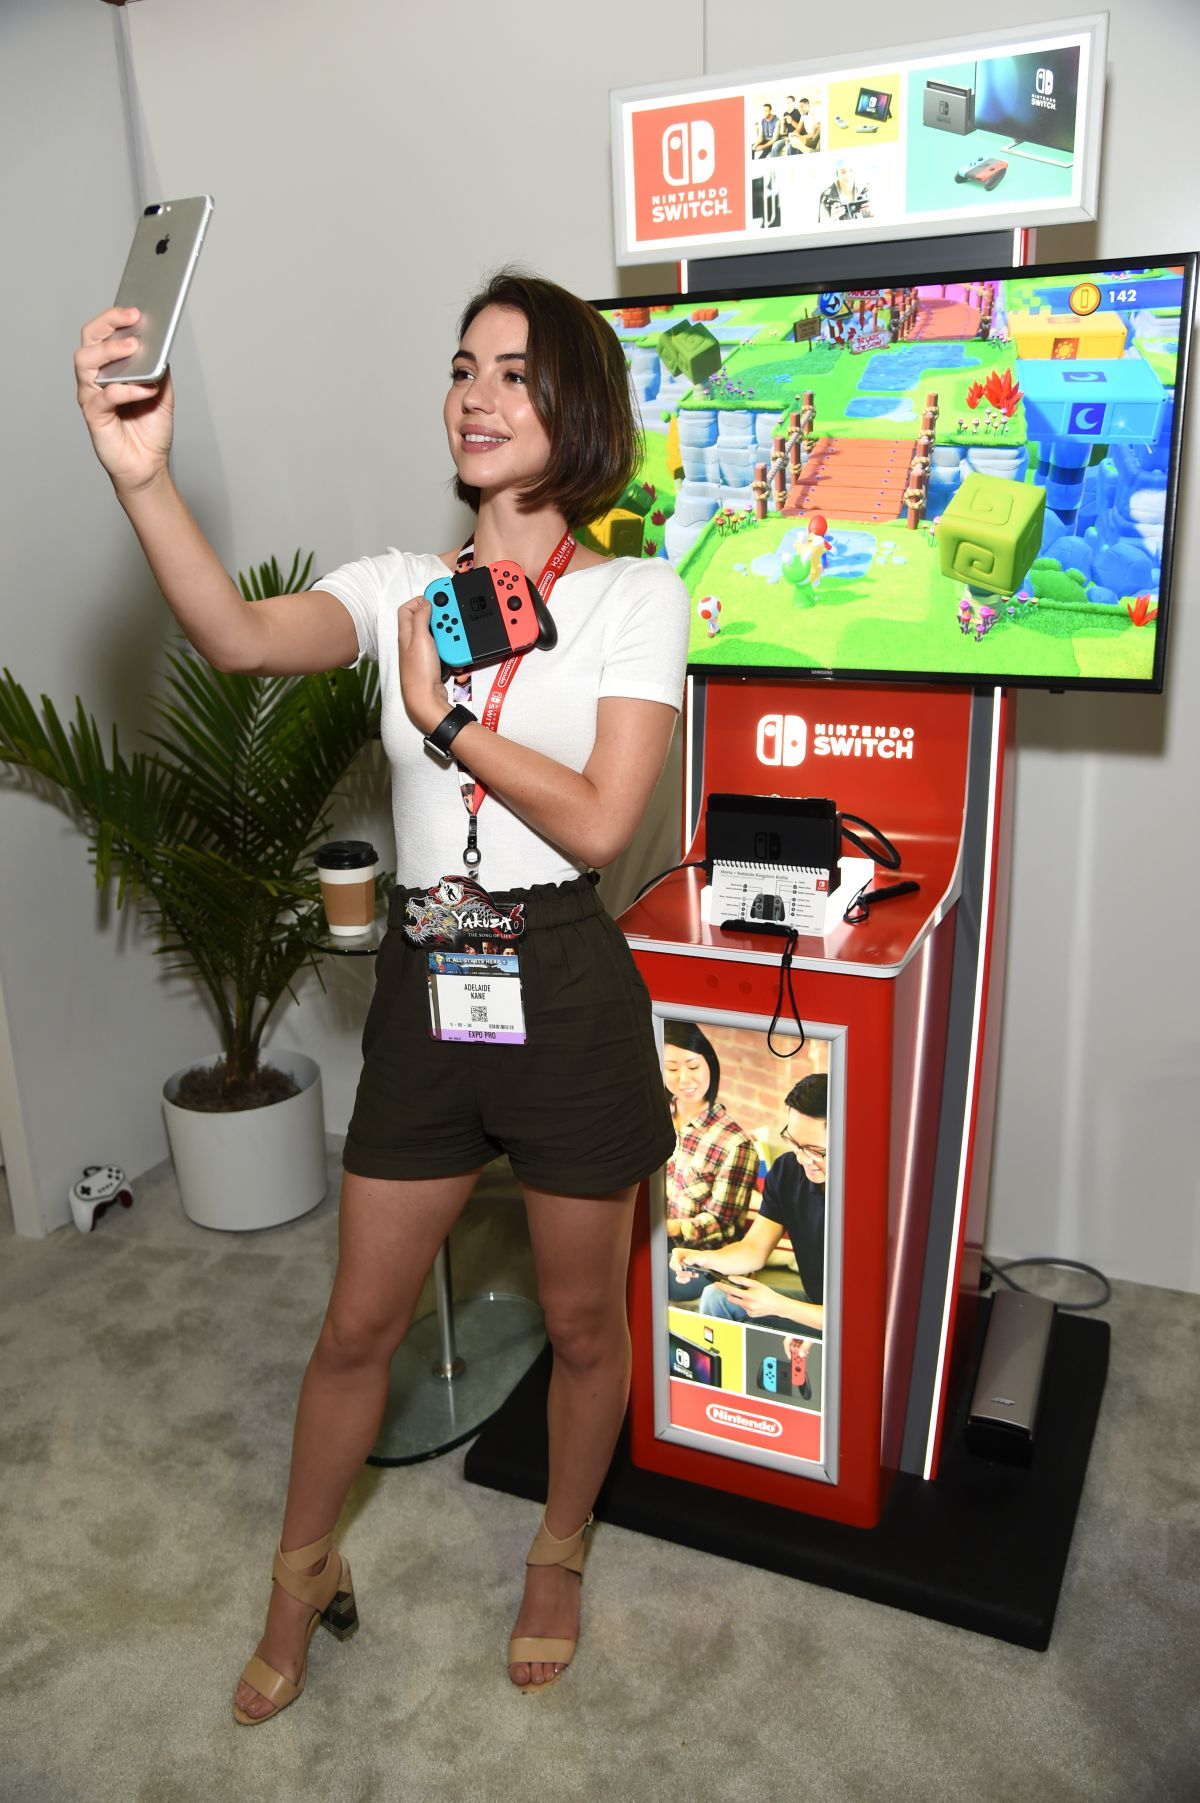 ADELAIDE KANE at Nintendo Booth at E3 Gaming Convention 2017 in Los Angeles 06/13/2017